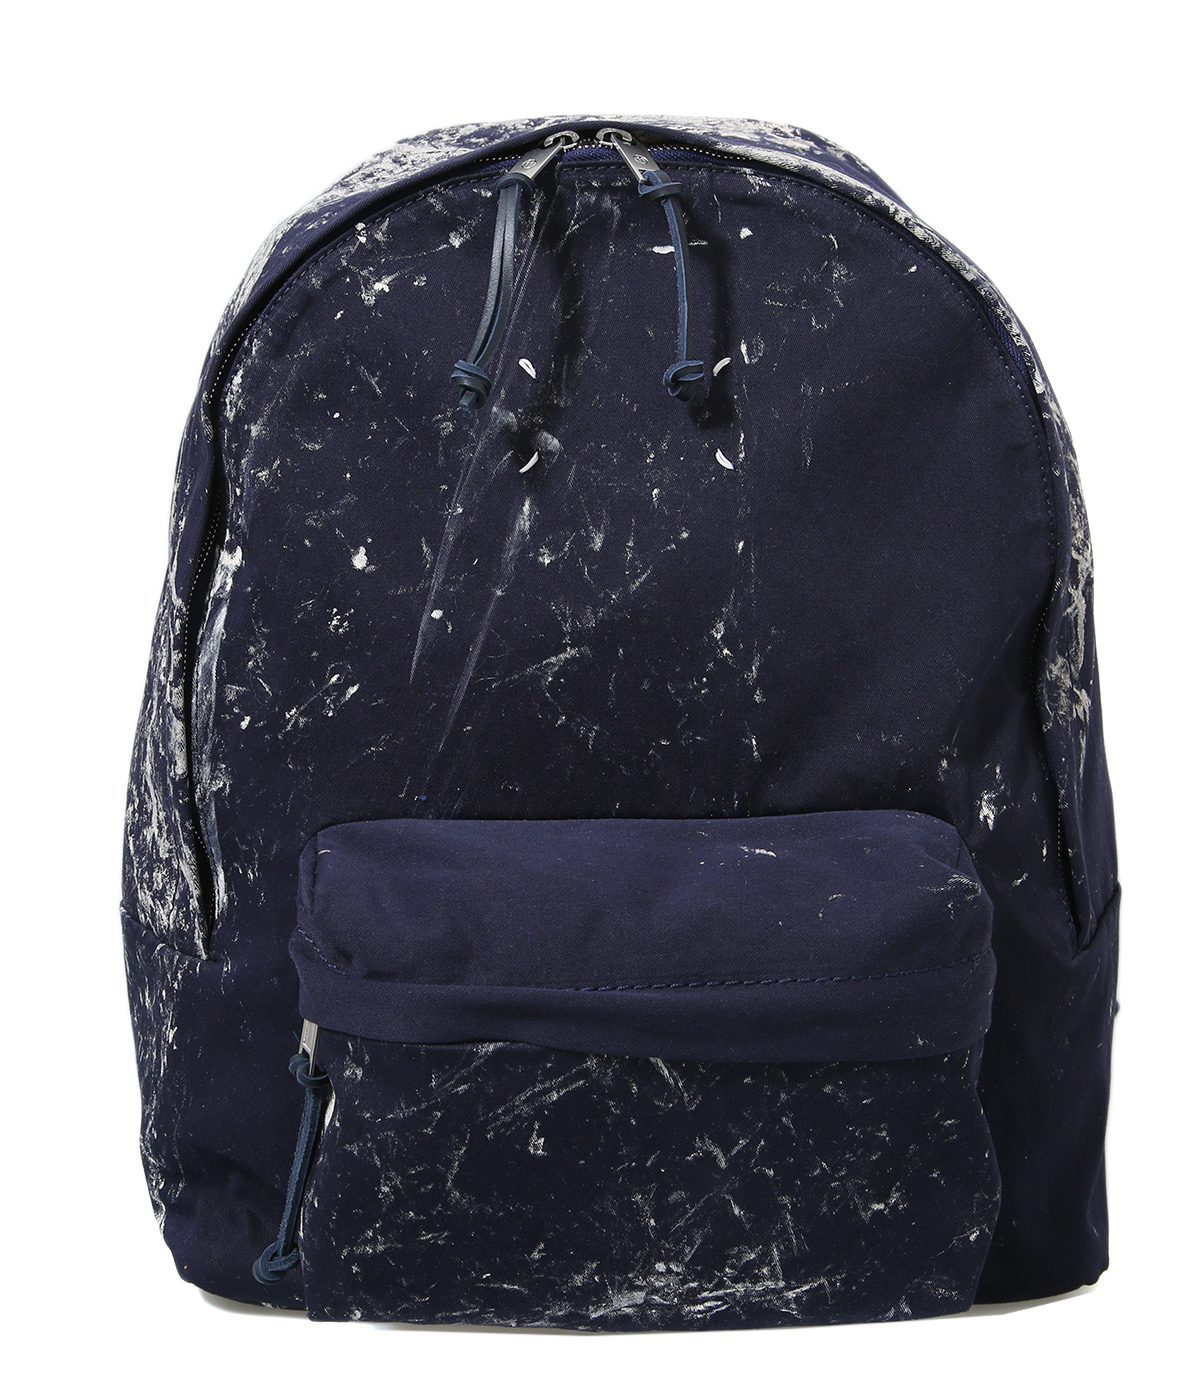 BACK PACK DYED